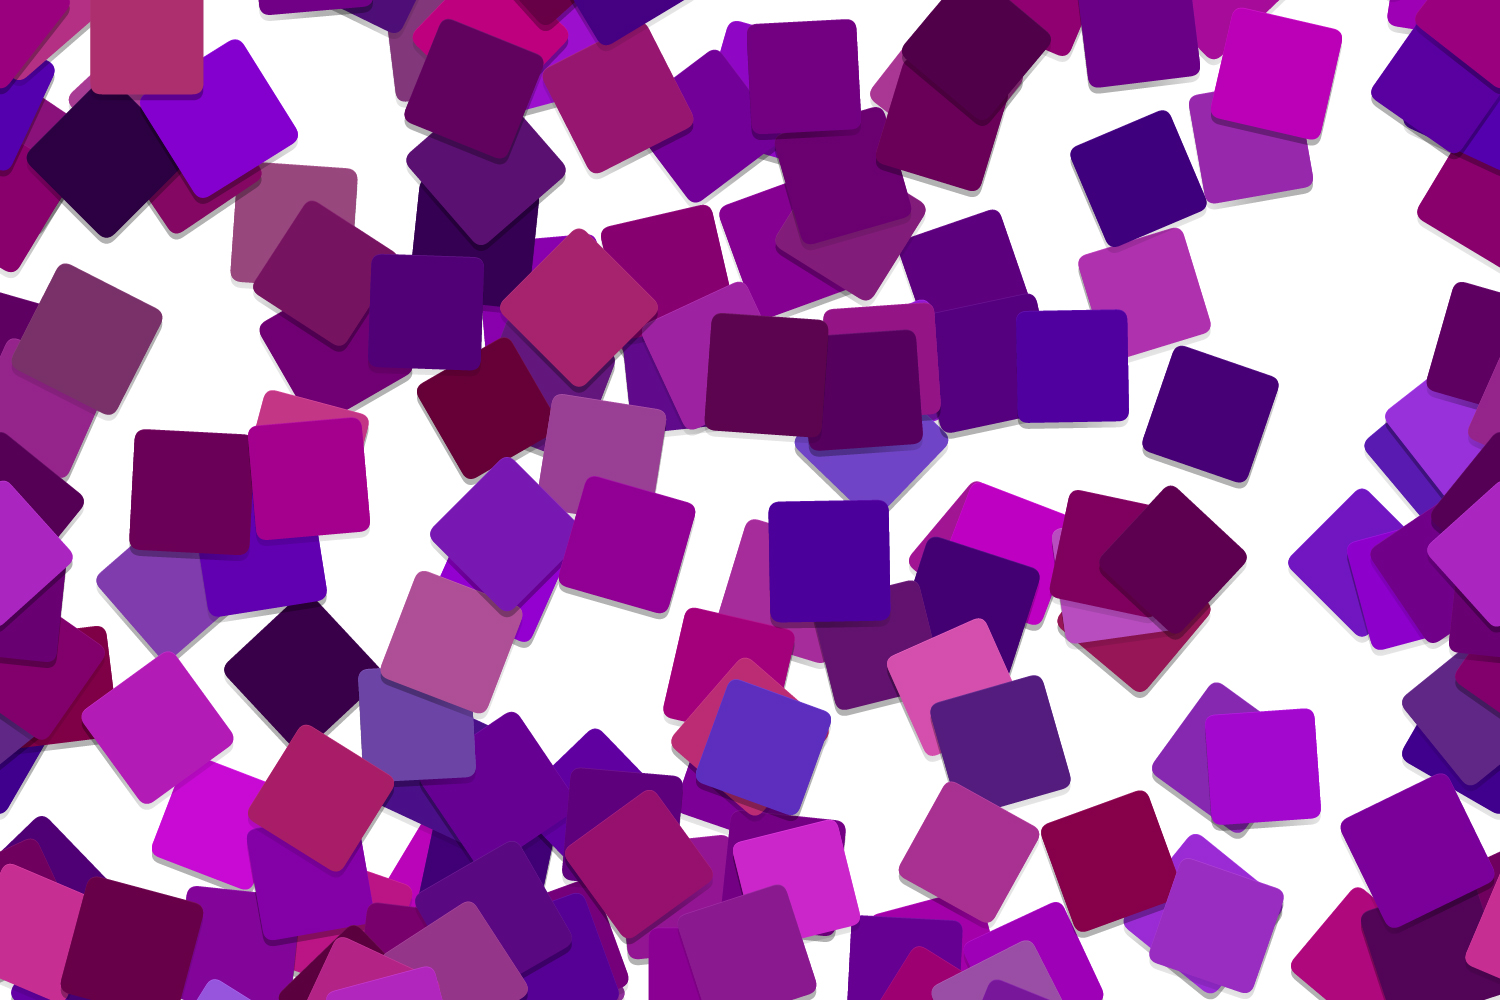 40 Seamless Square Backgrounds (AI, EPS, JPG 5000x5000) example image 11